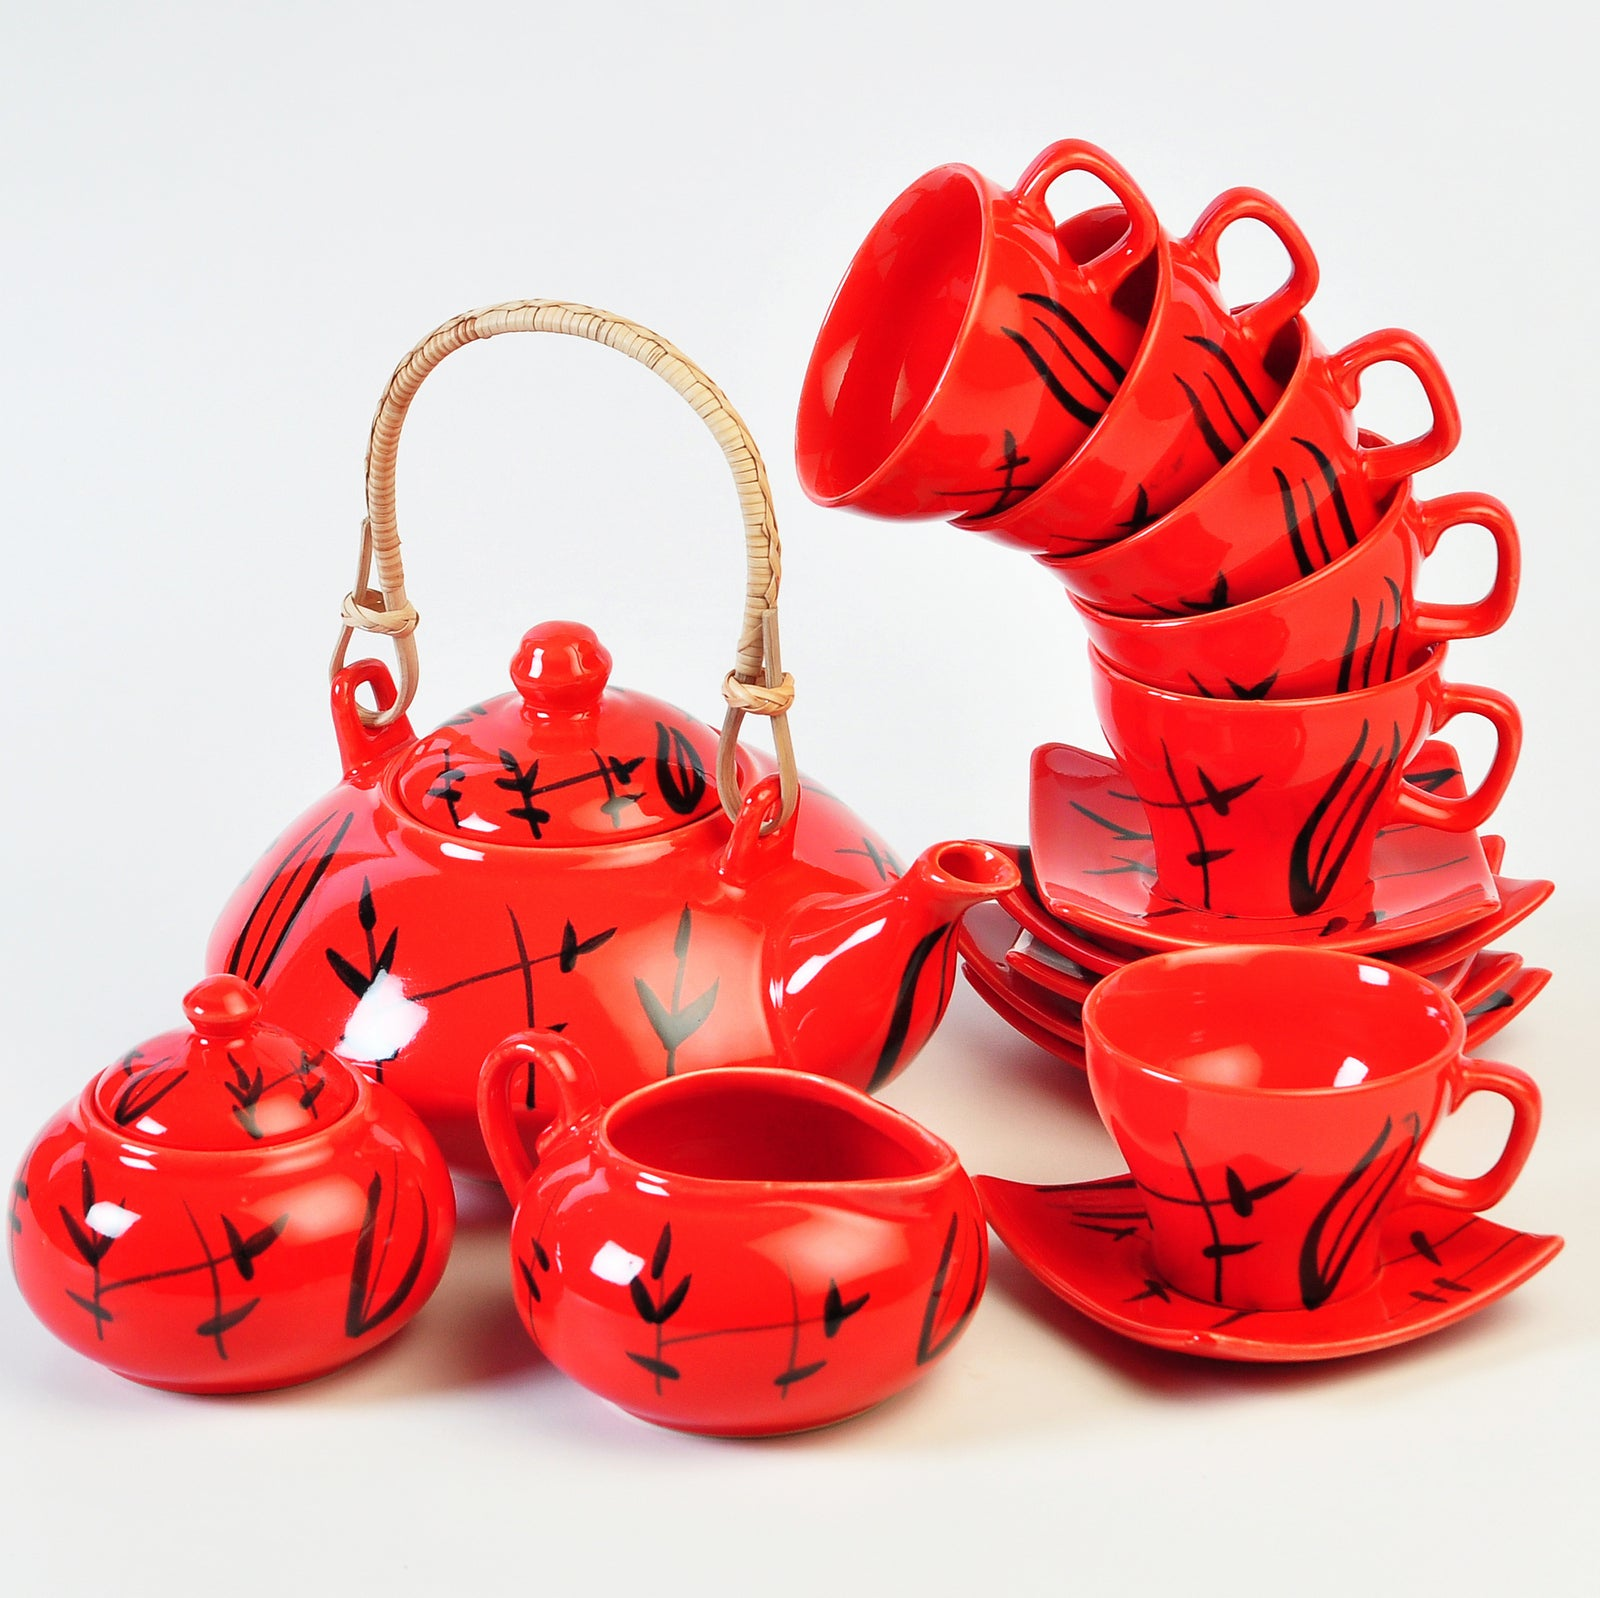 red-bamboo-tea-set-with-cane-handle-dec5311